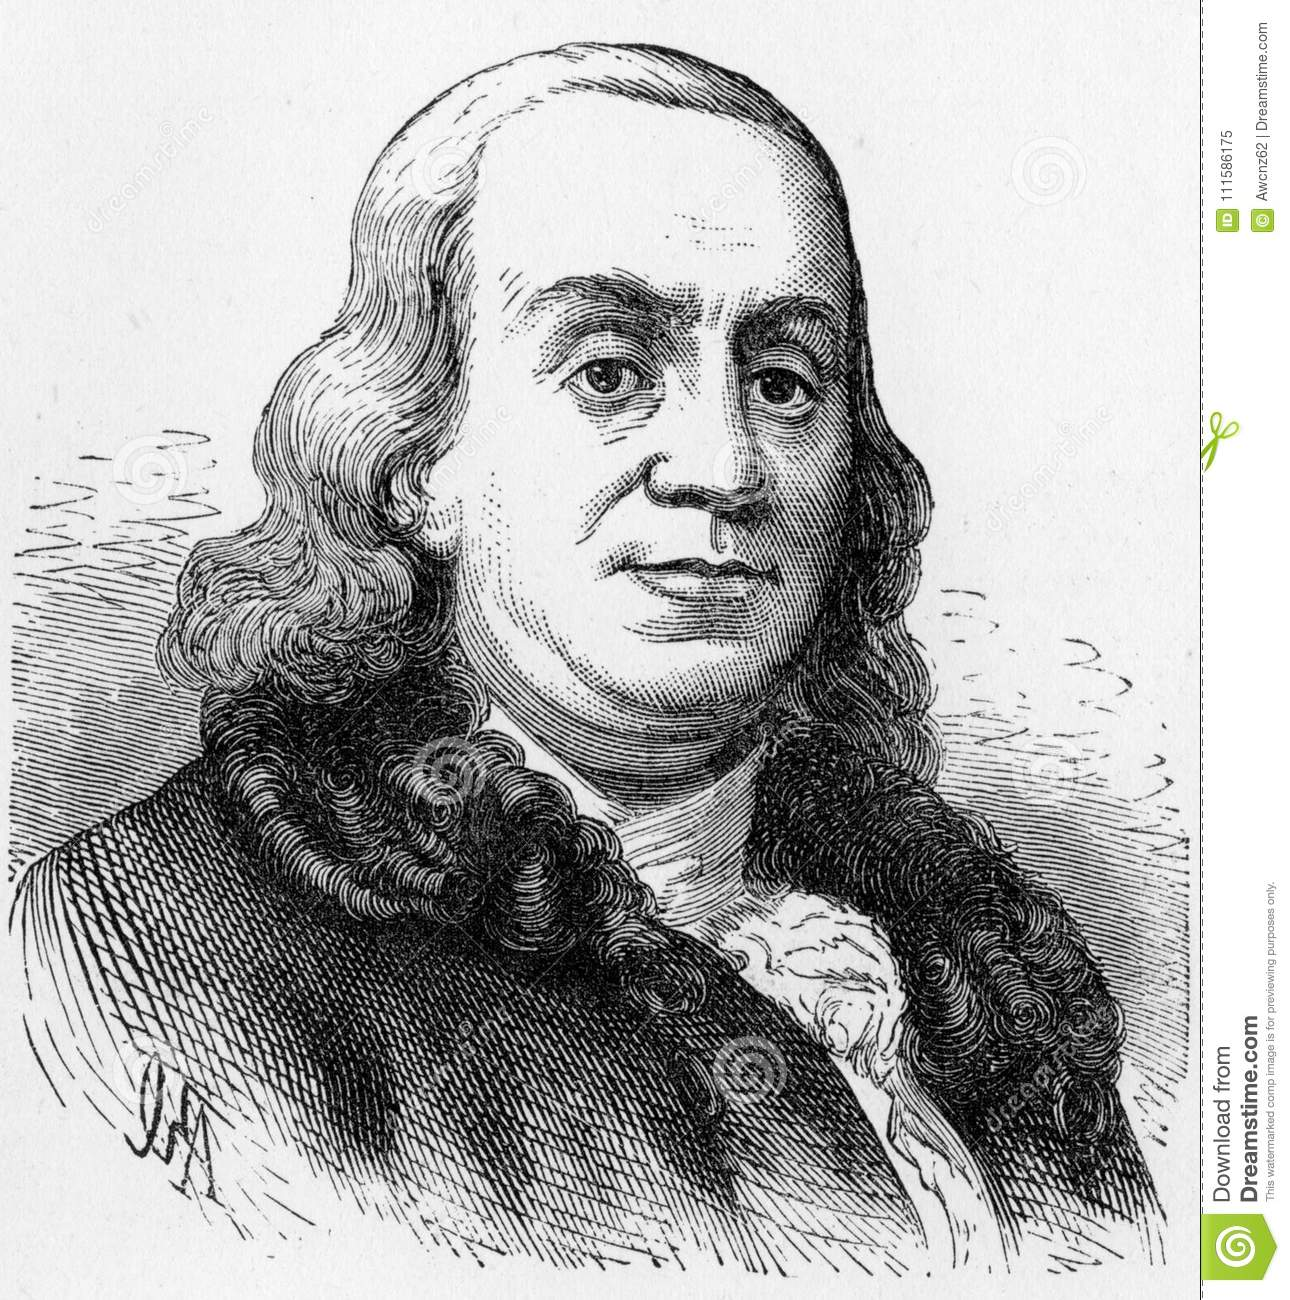 Benjamin Franklin, Founding Father of the United States,